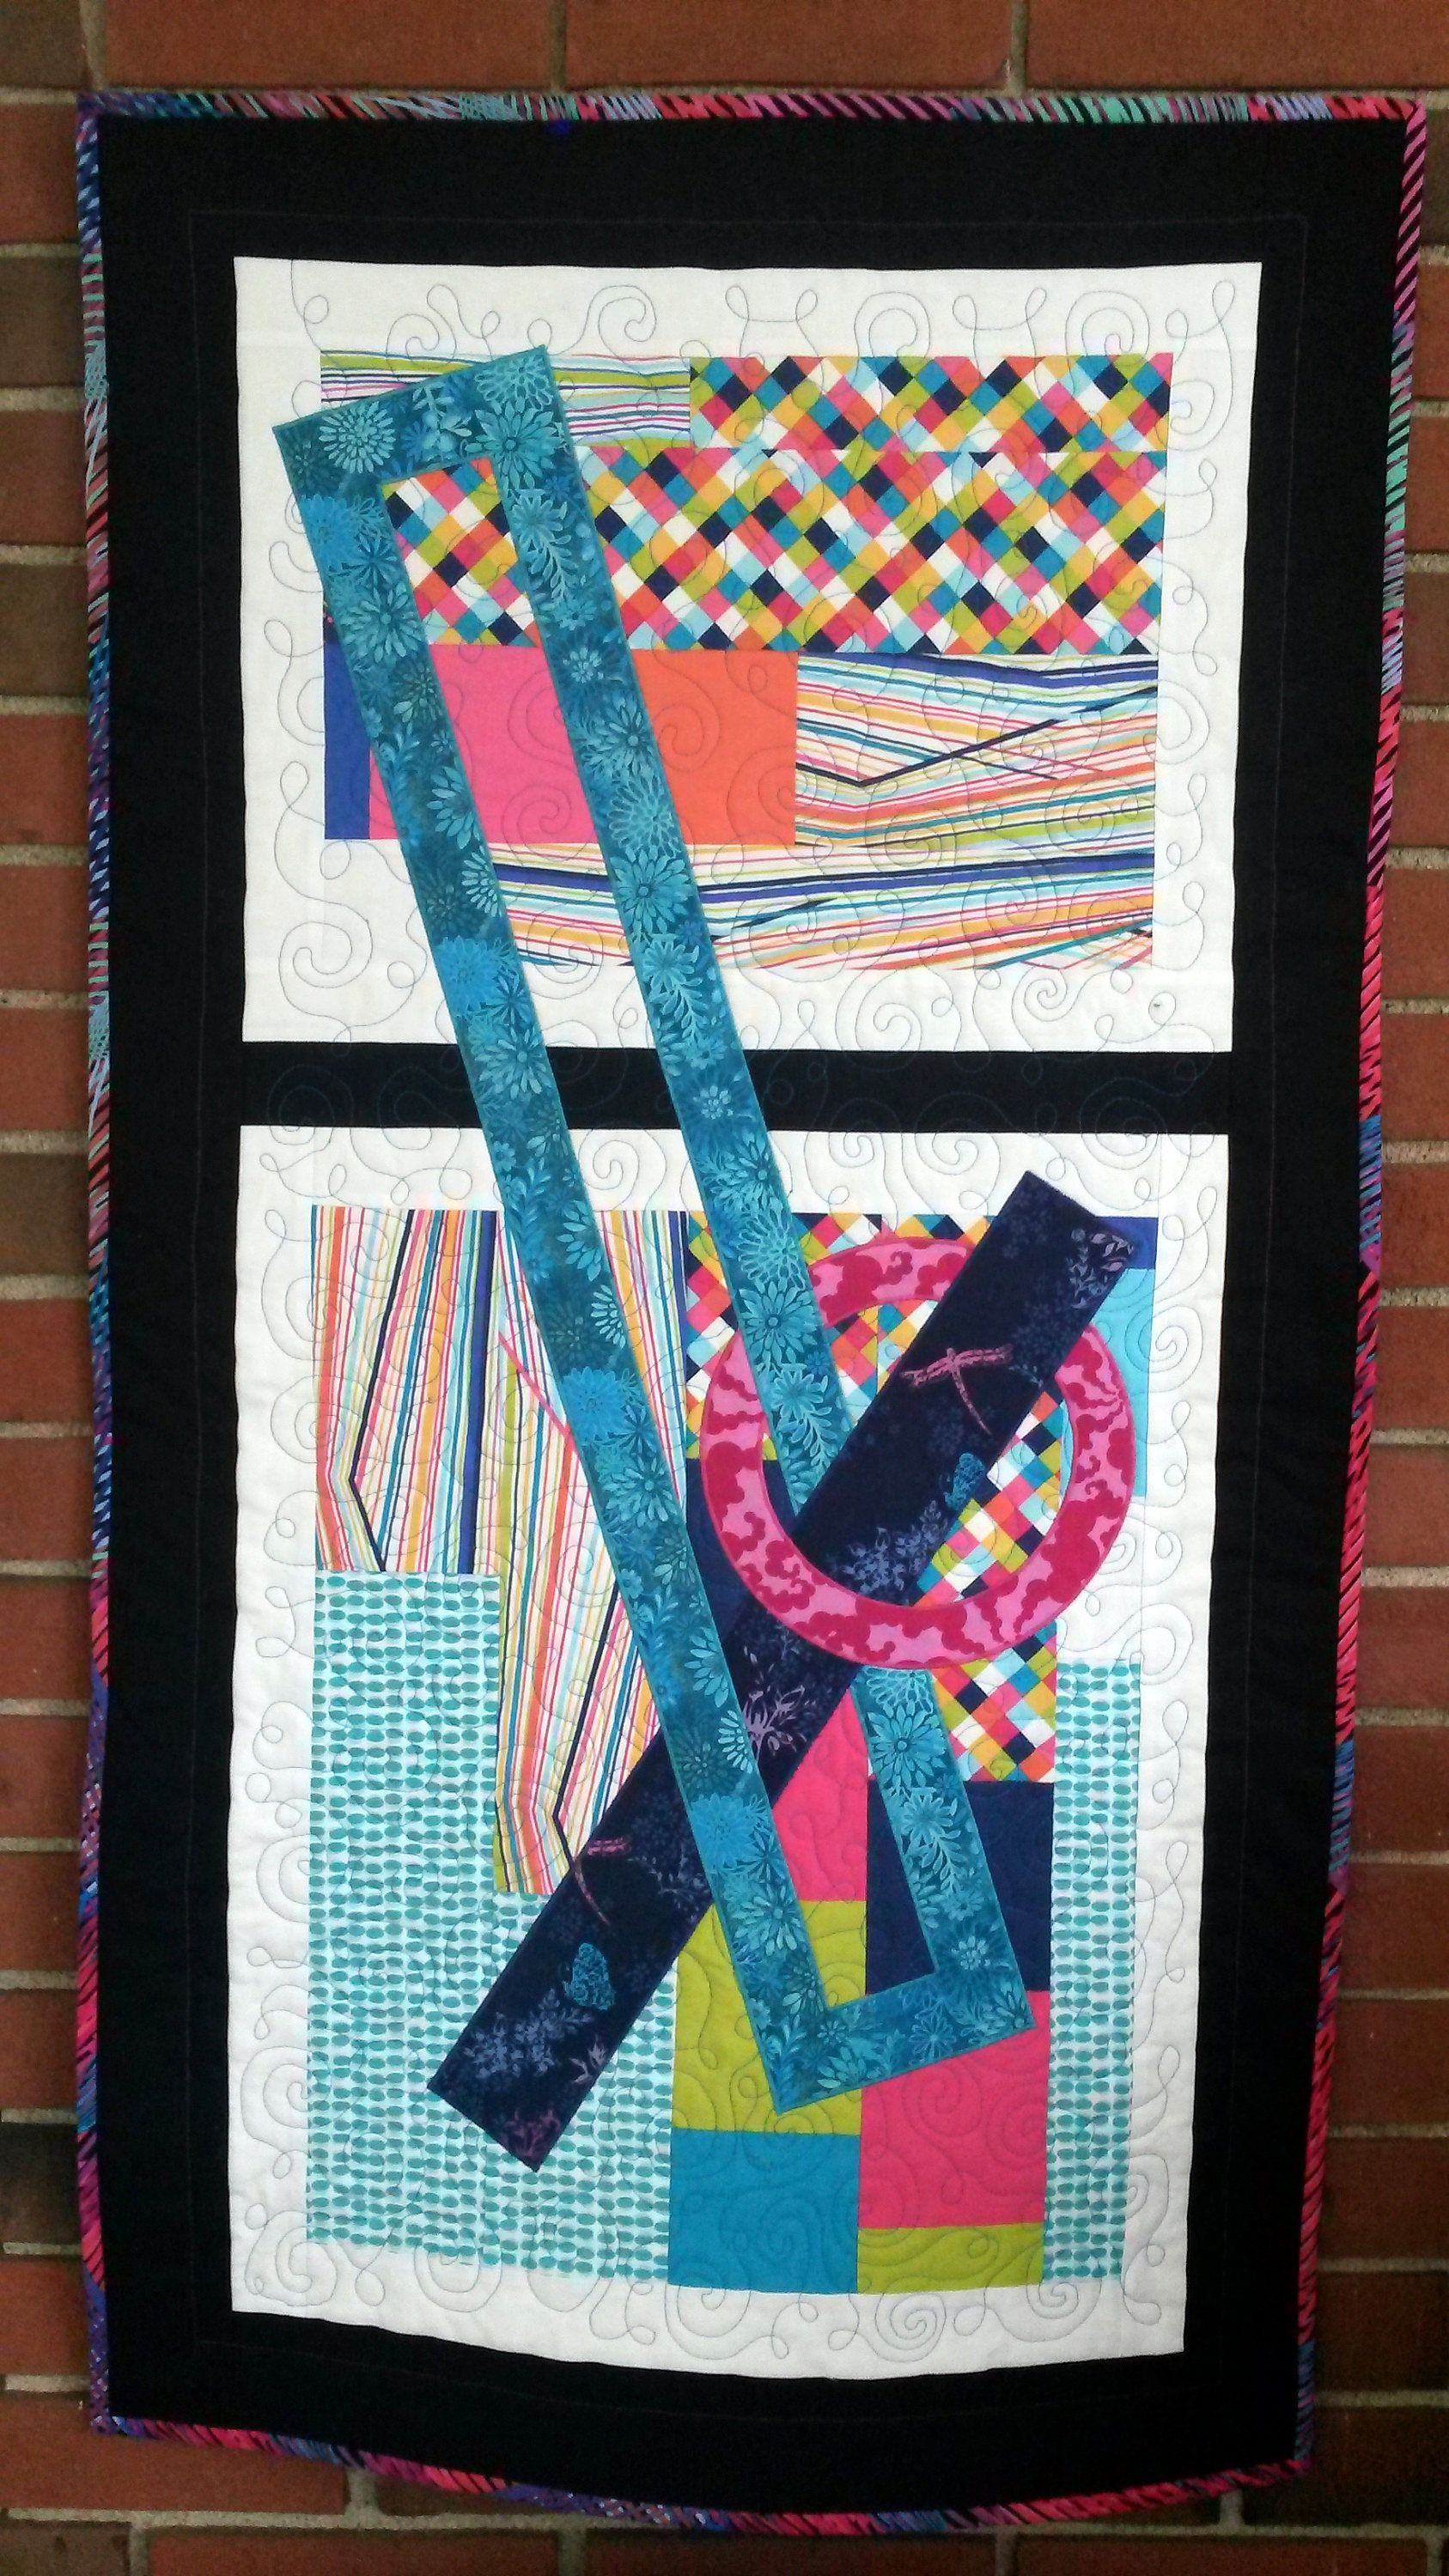 Modern Quilted Wall Hanging Geometric Shapes Applique Etsy Art Quilts Quilted Wall Hangings Circle Quilts